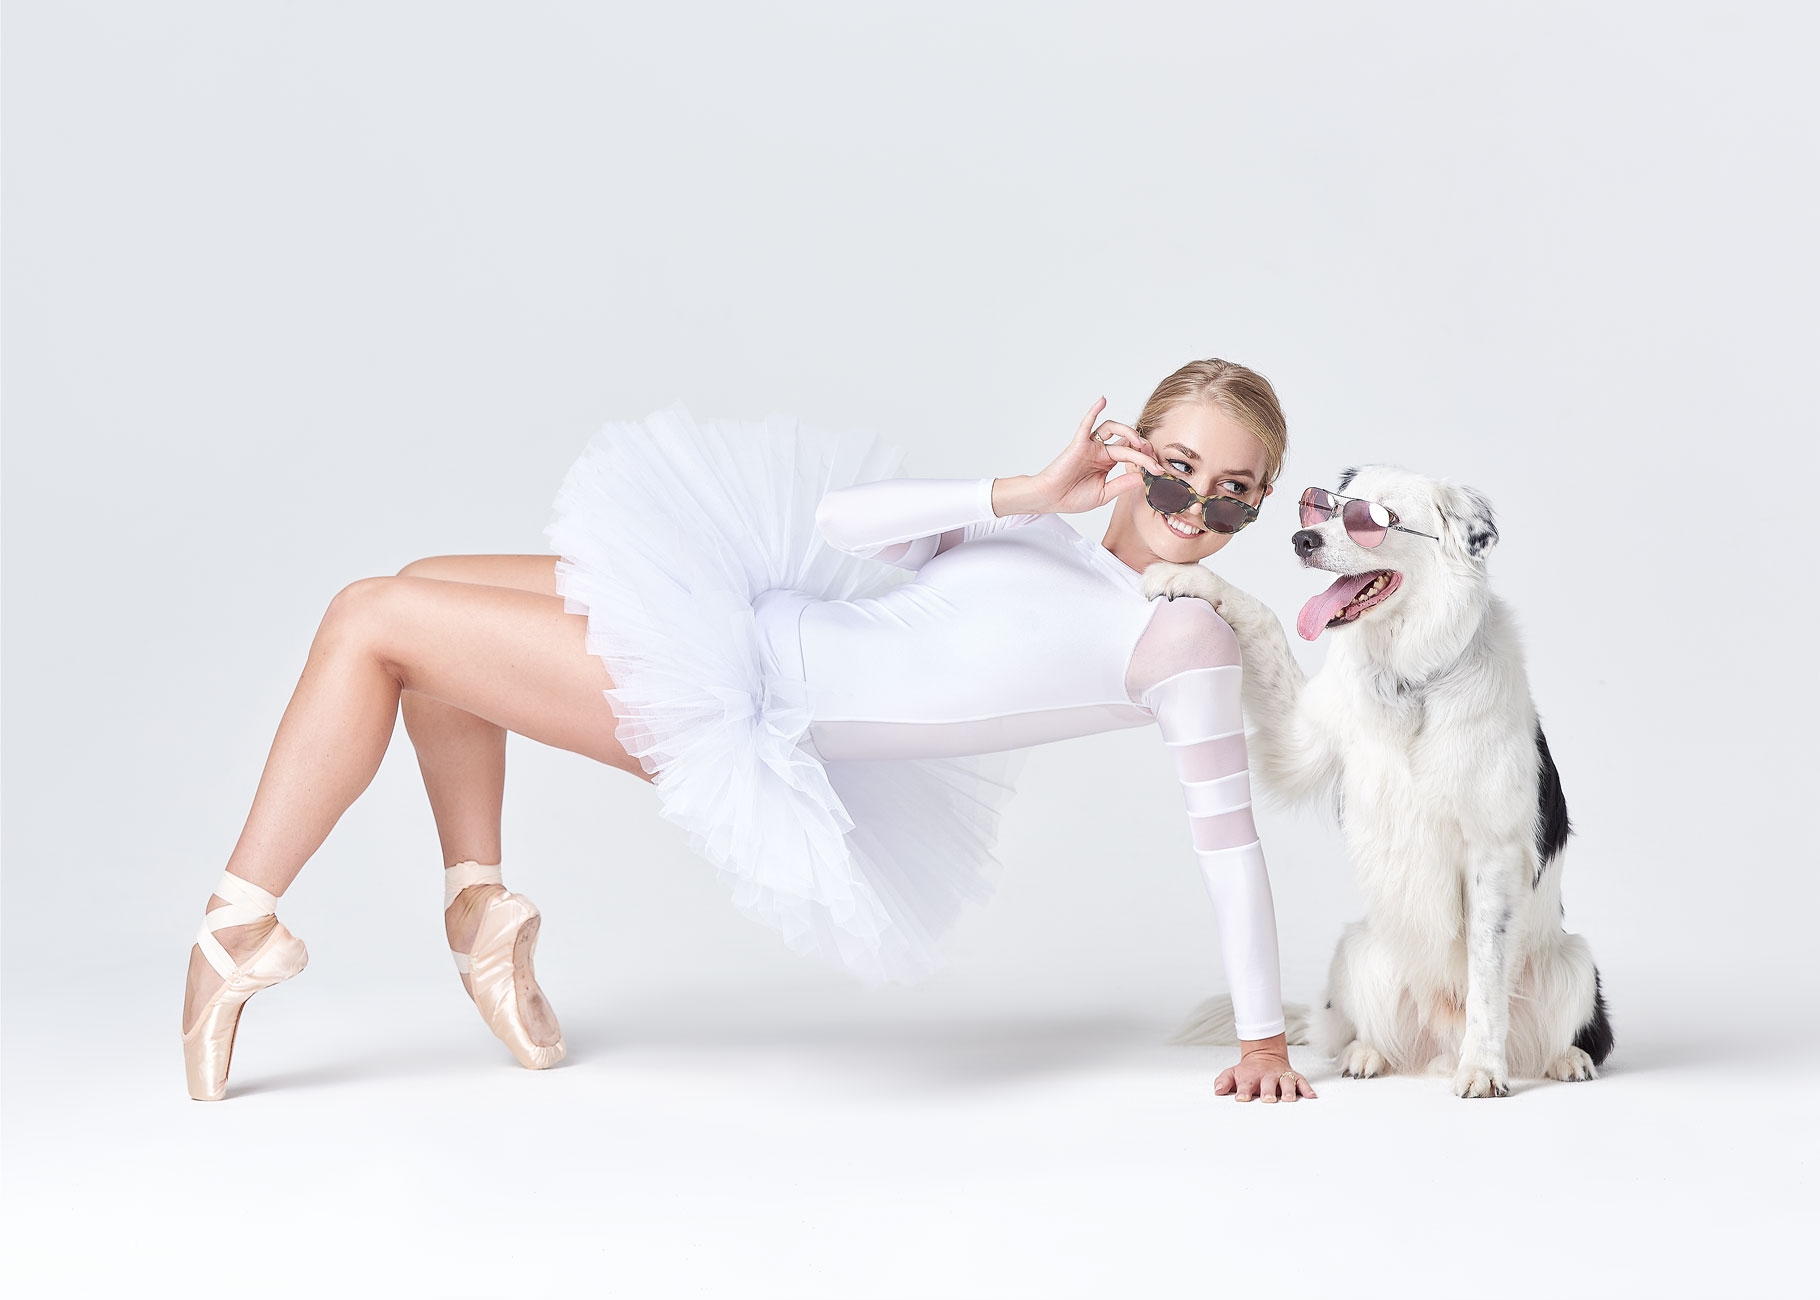 Dancers_and_Dogs_11